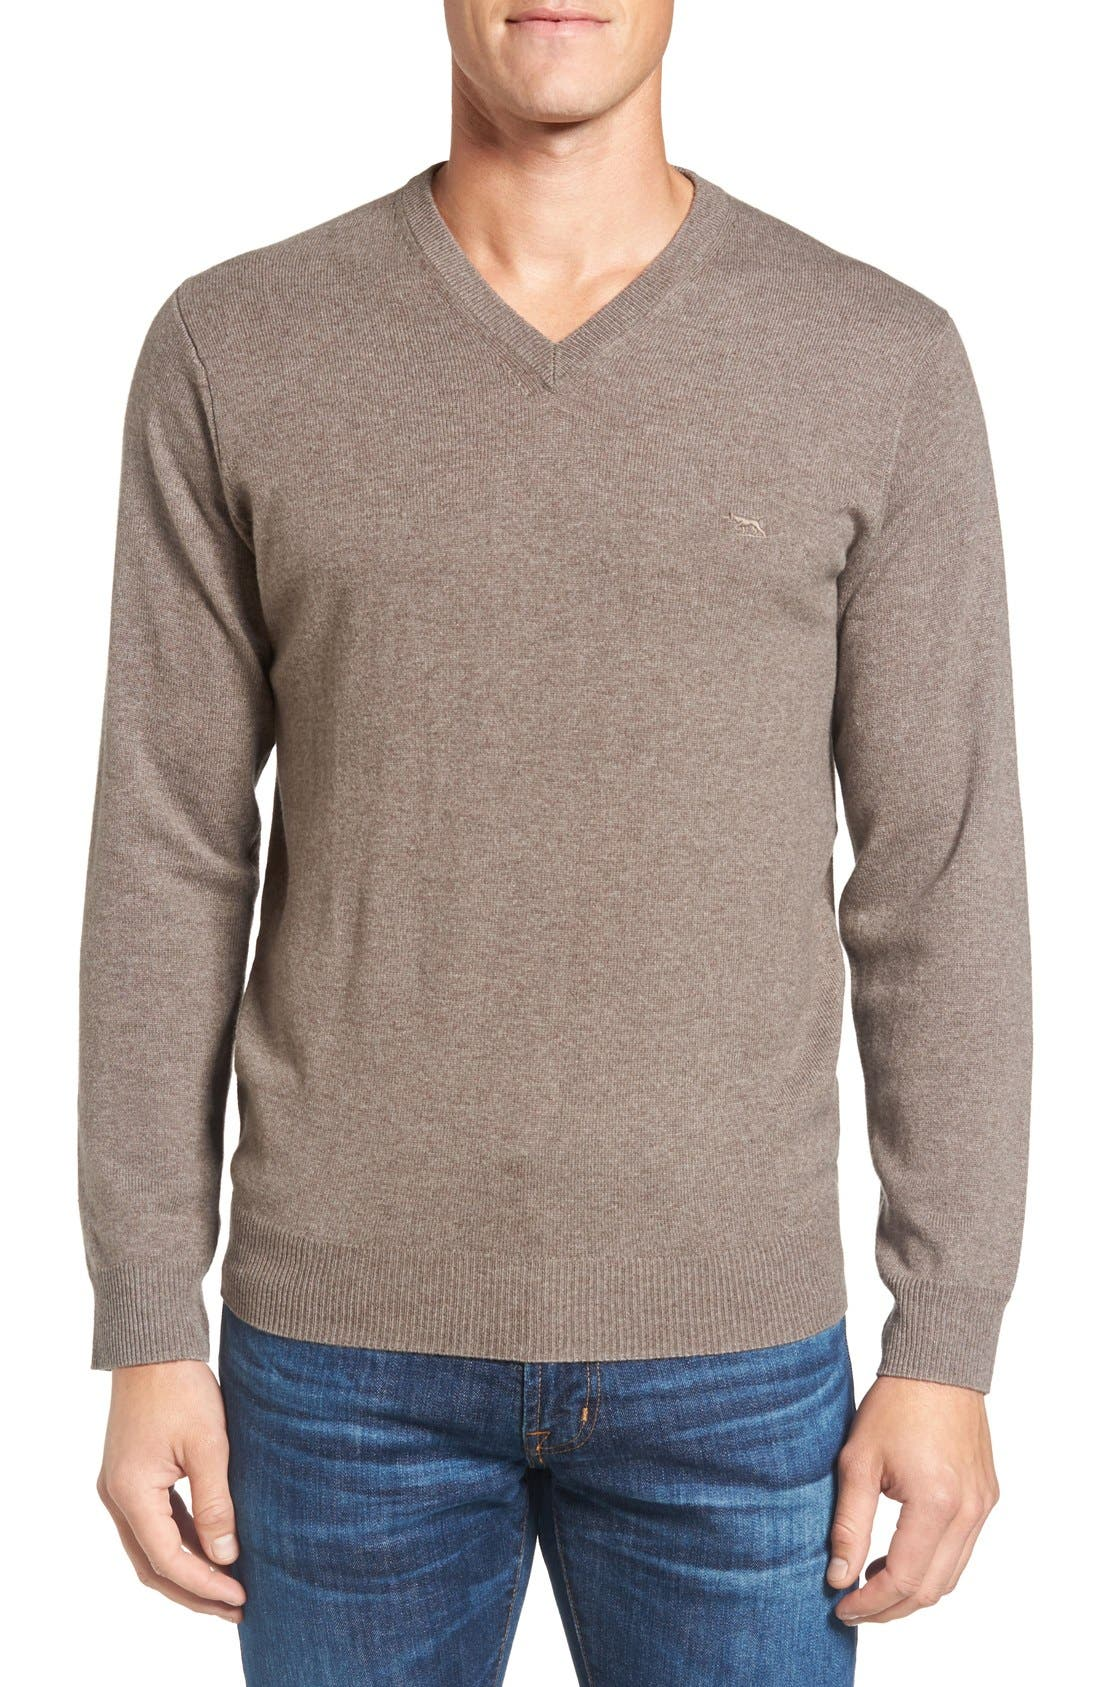 'Inchbonnie' Wool & Cashmere V-Neck Sweater,                         Main,                         color, Taupe